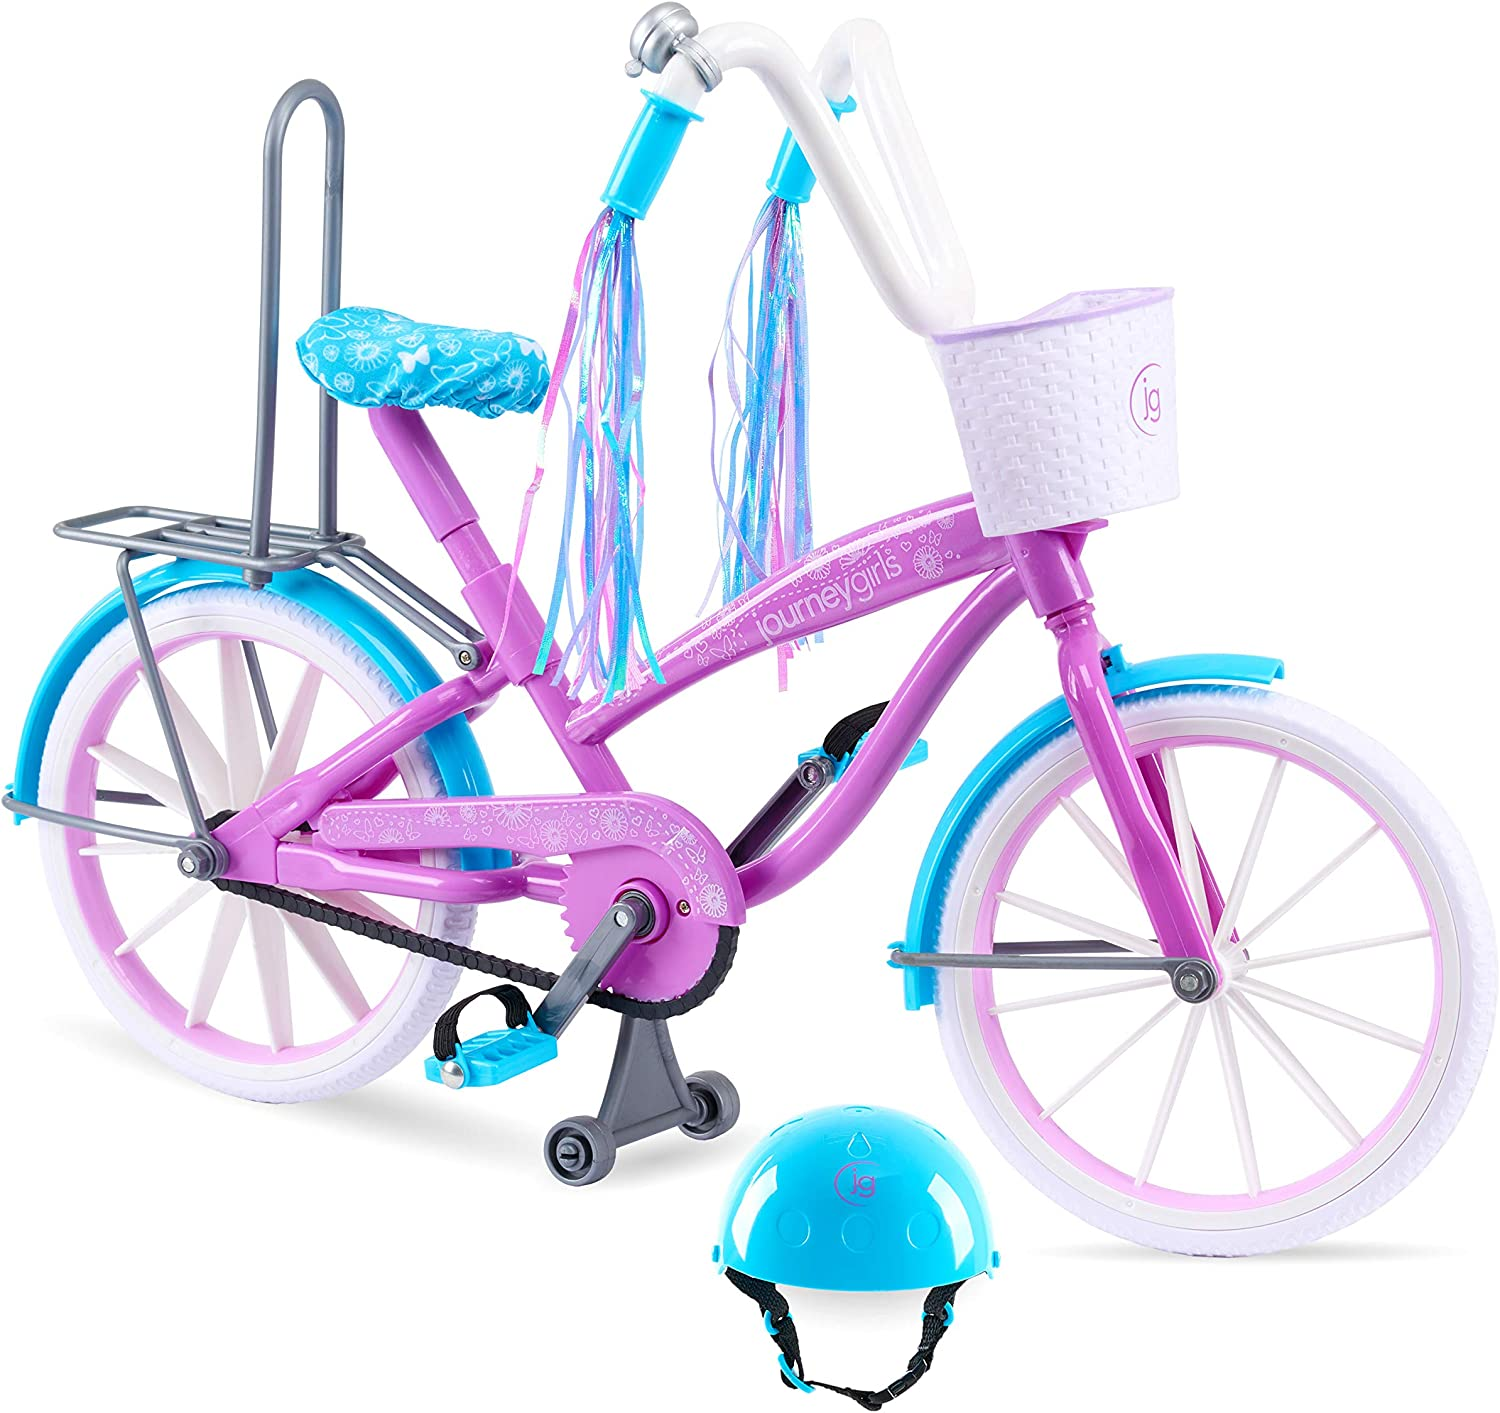 18 in Doll: Journey Girls Bike with Helmet, Streamers, Basket, and Wheels that Roll! .99 at Woot!